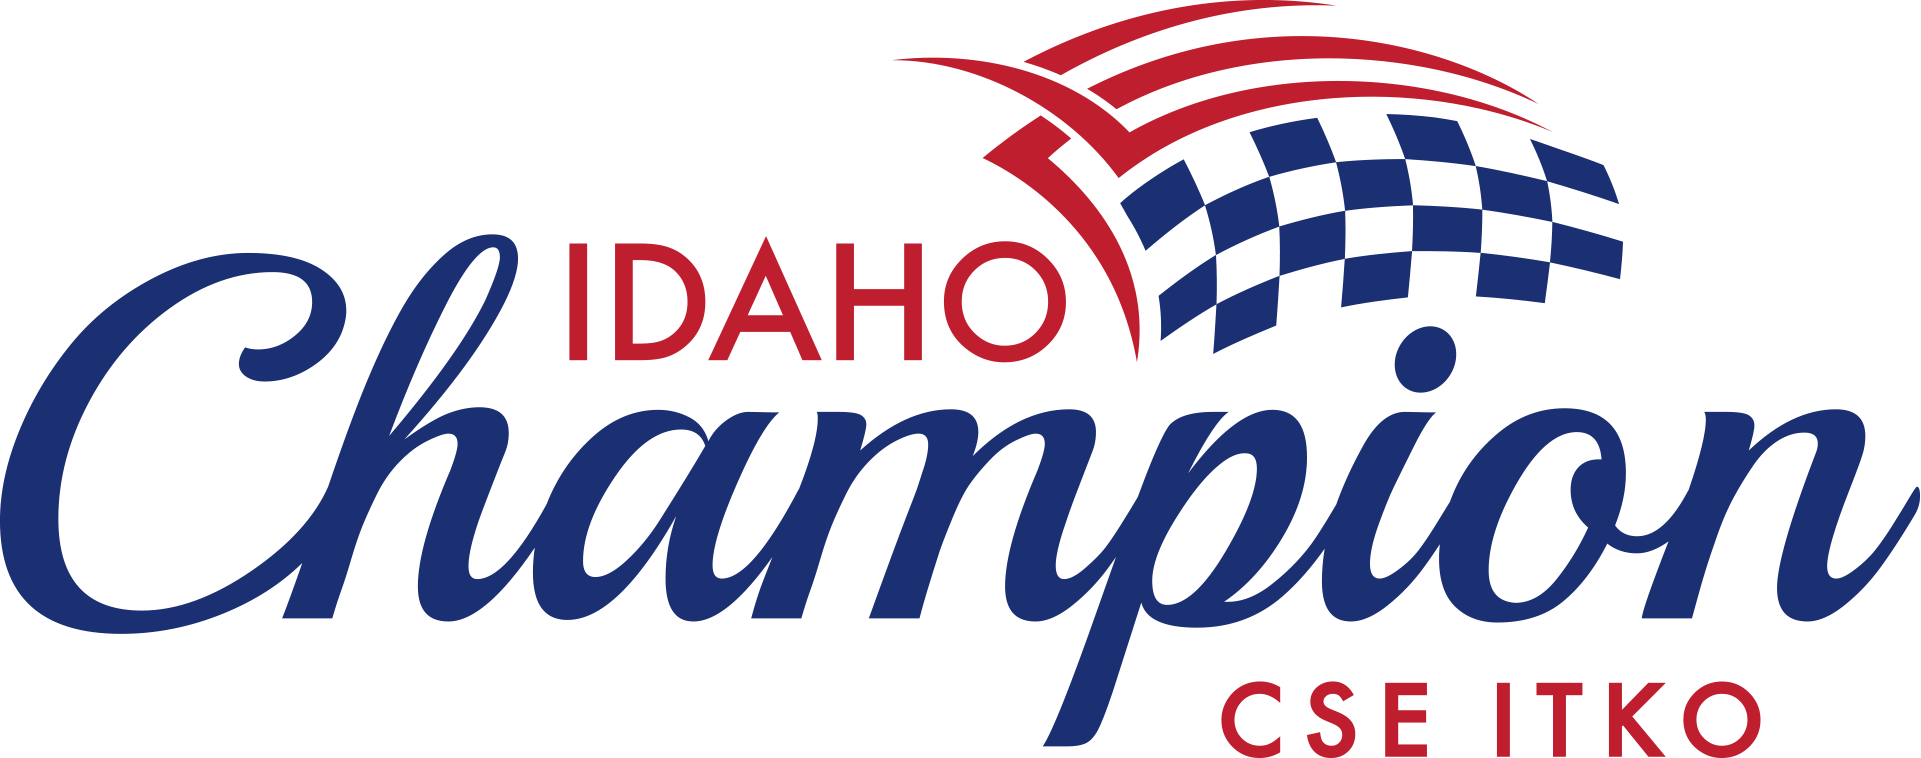 Idaho Champion Announces Non-Brokered Private Placement up to $1